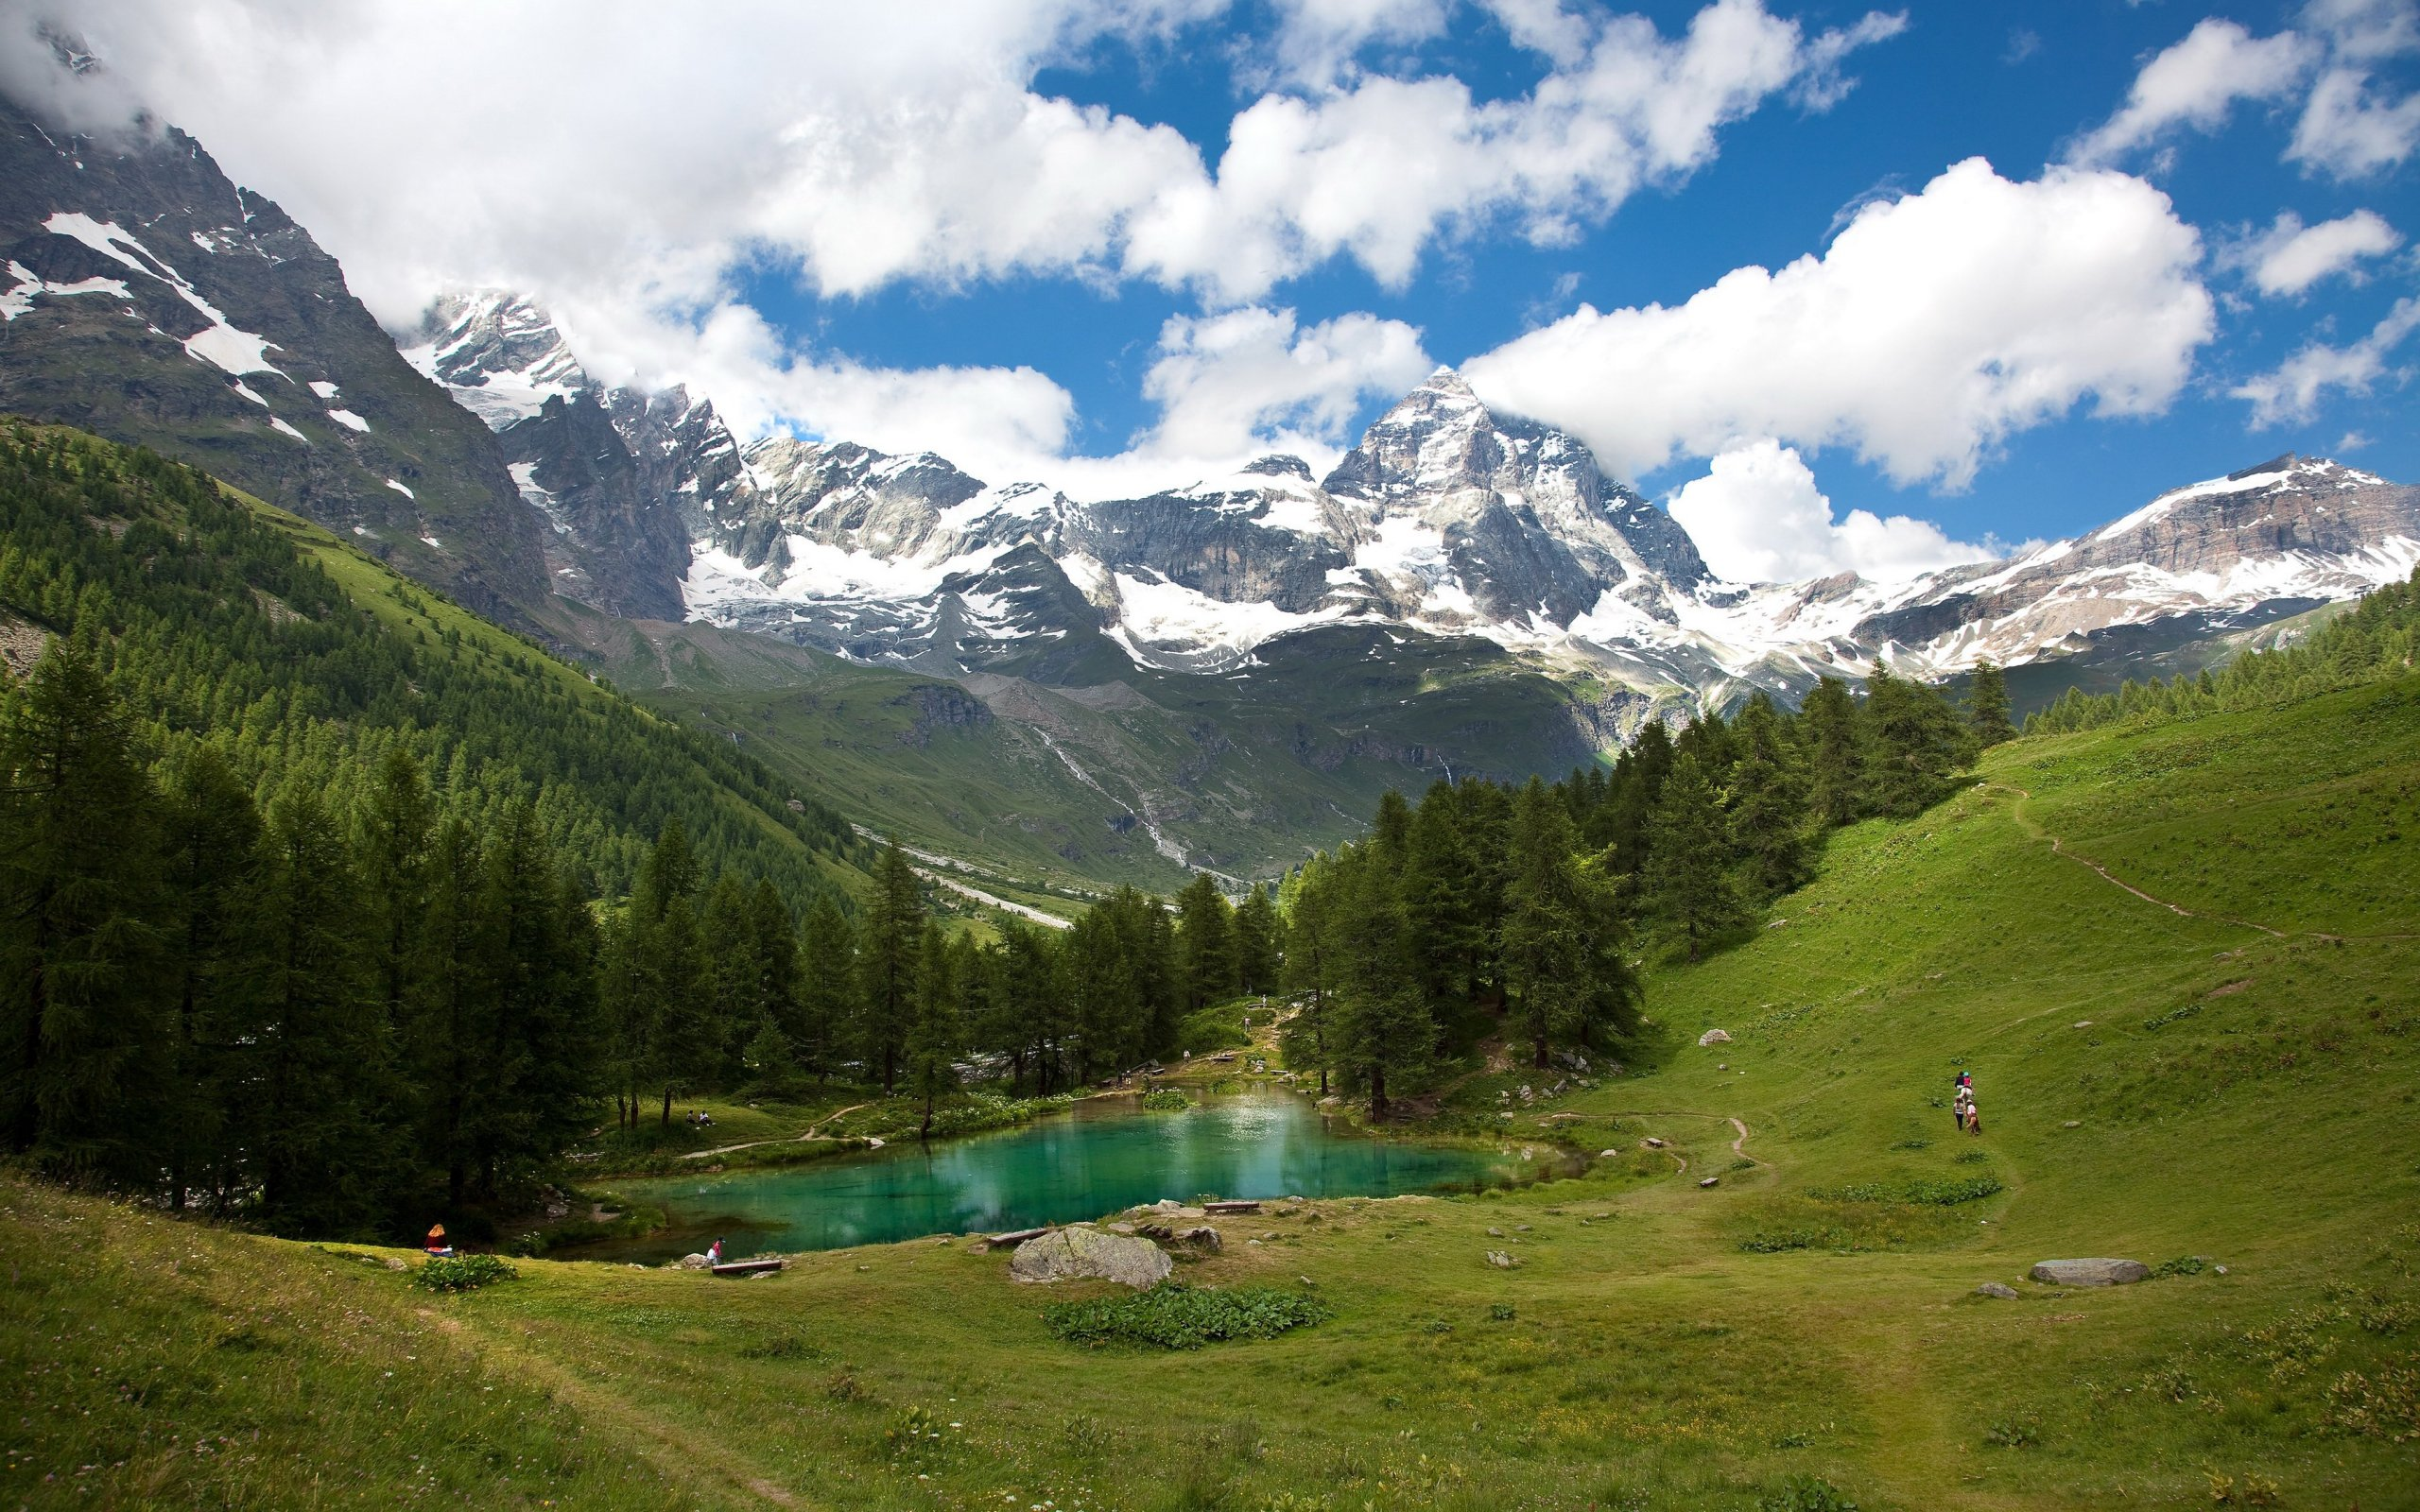 alps full hd wallpaper and background image | 2560x1600 | id:546178